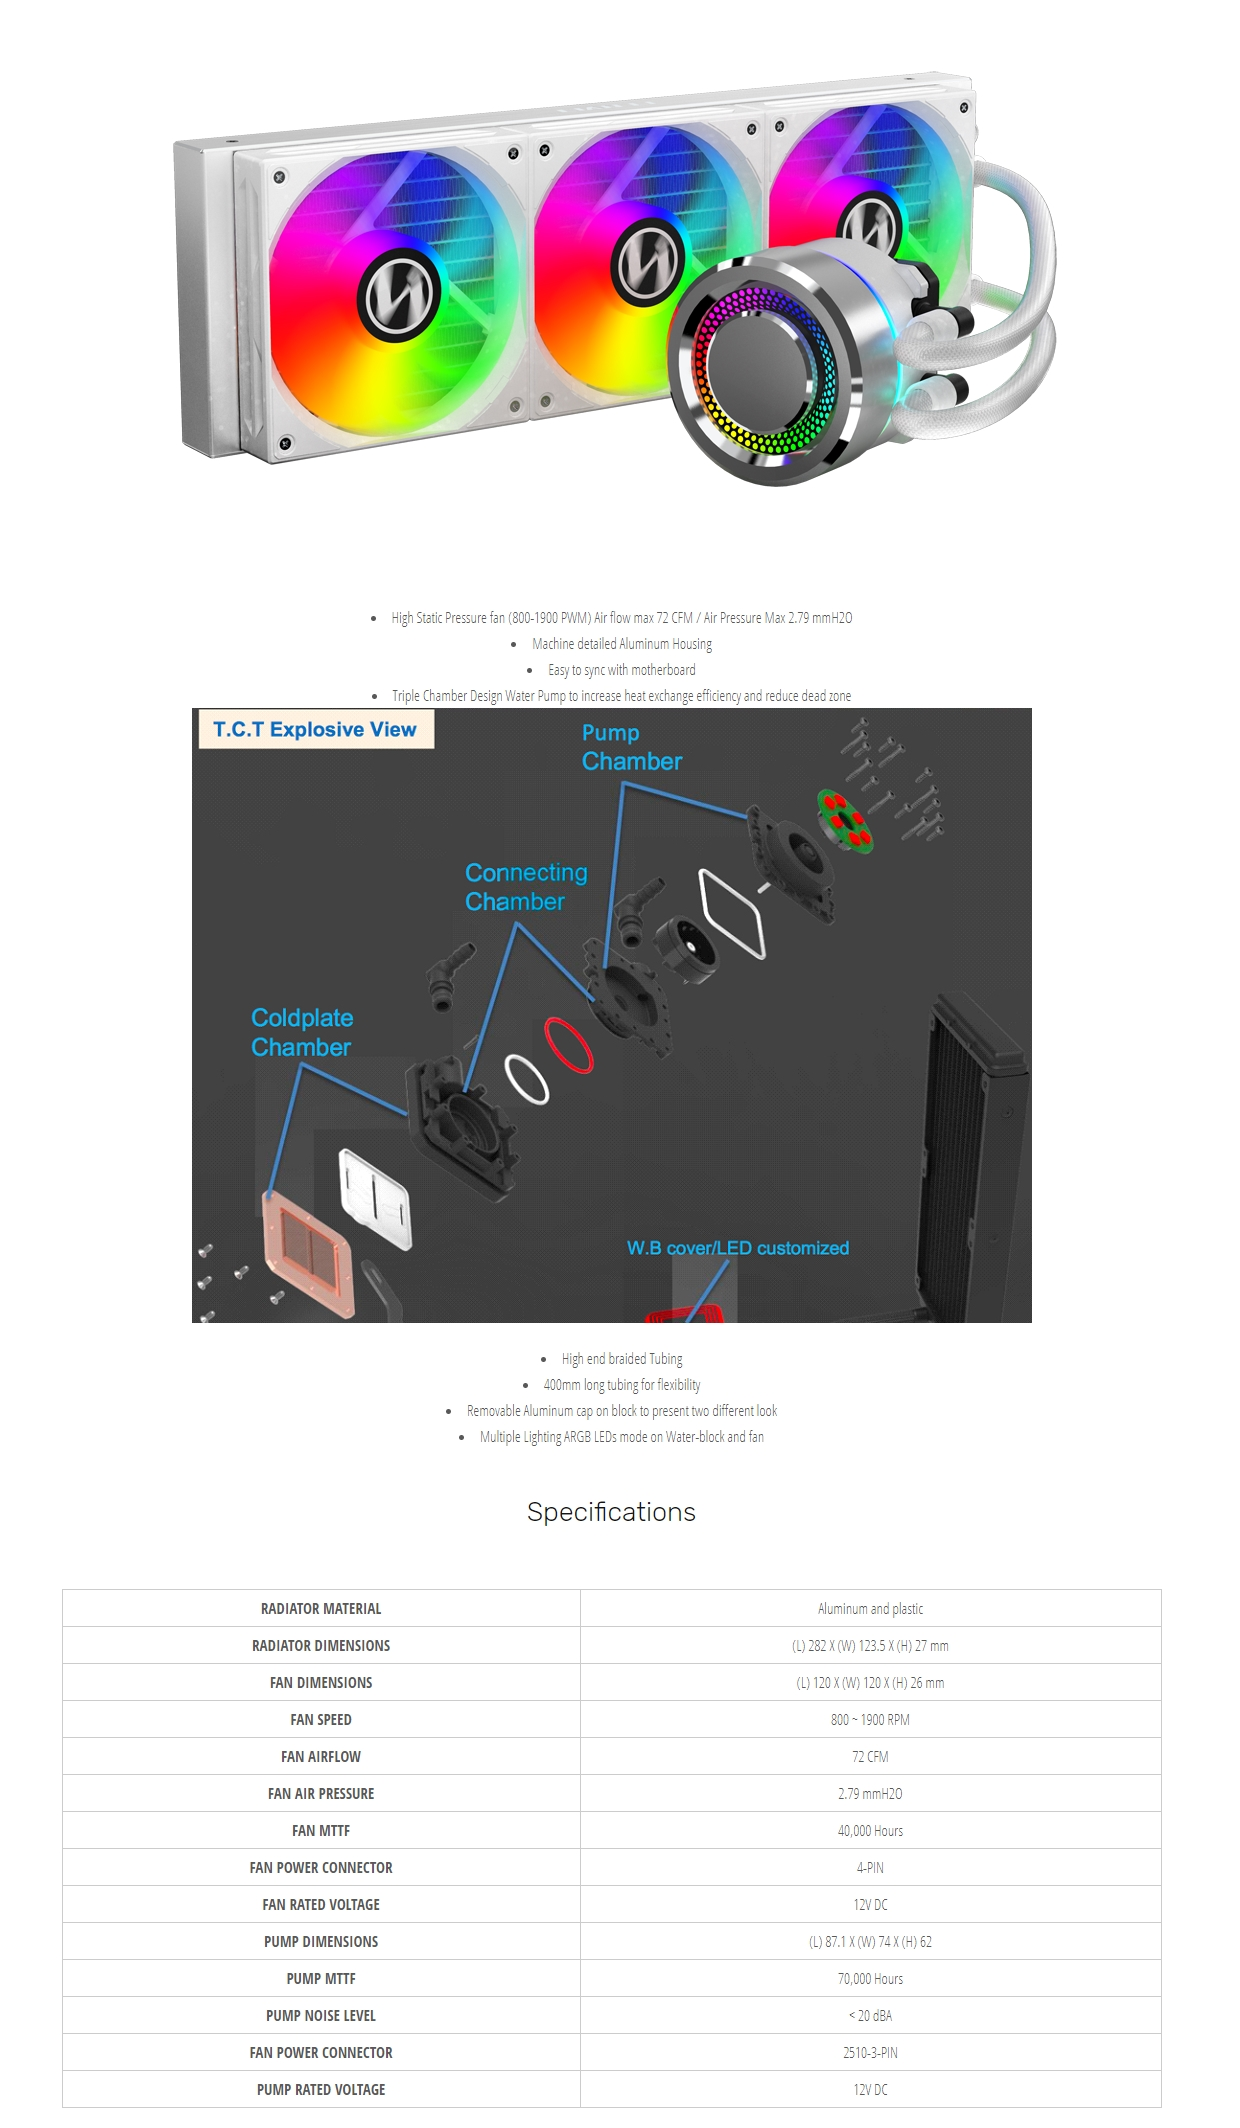 A large marketing image providing additional information about the product Lian-Li Galahad 360mm Silver ARGB AIO Liquid CPU Cooler - Additional alt info not provided